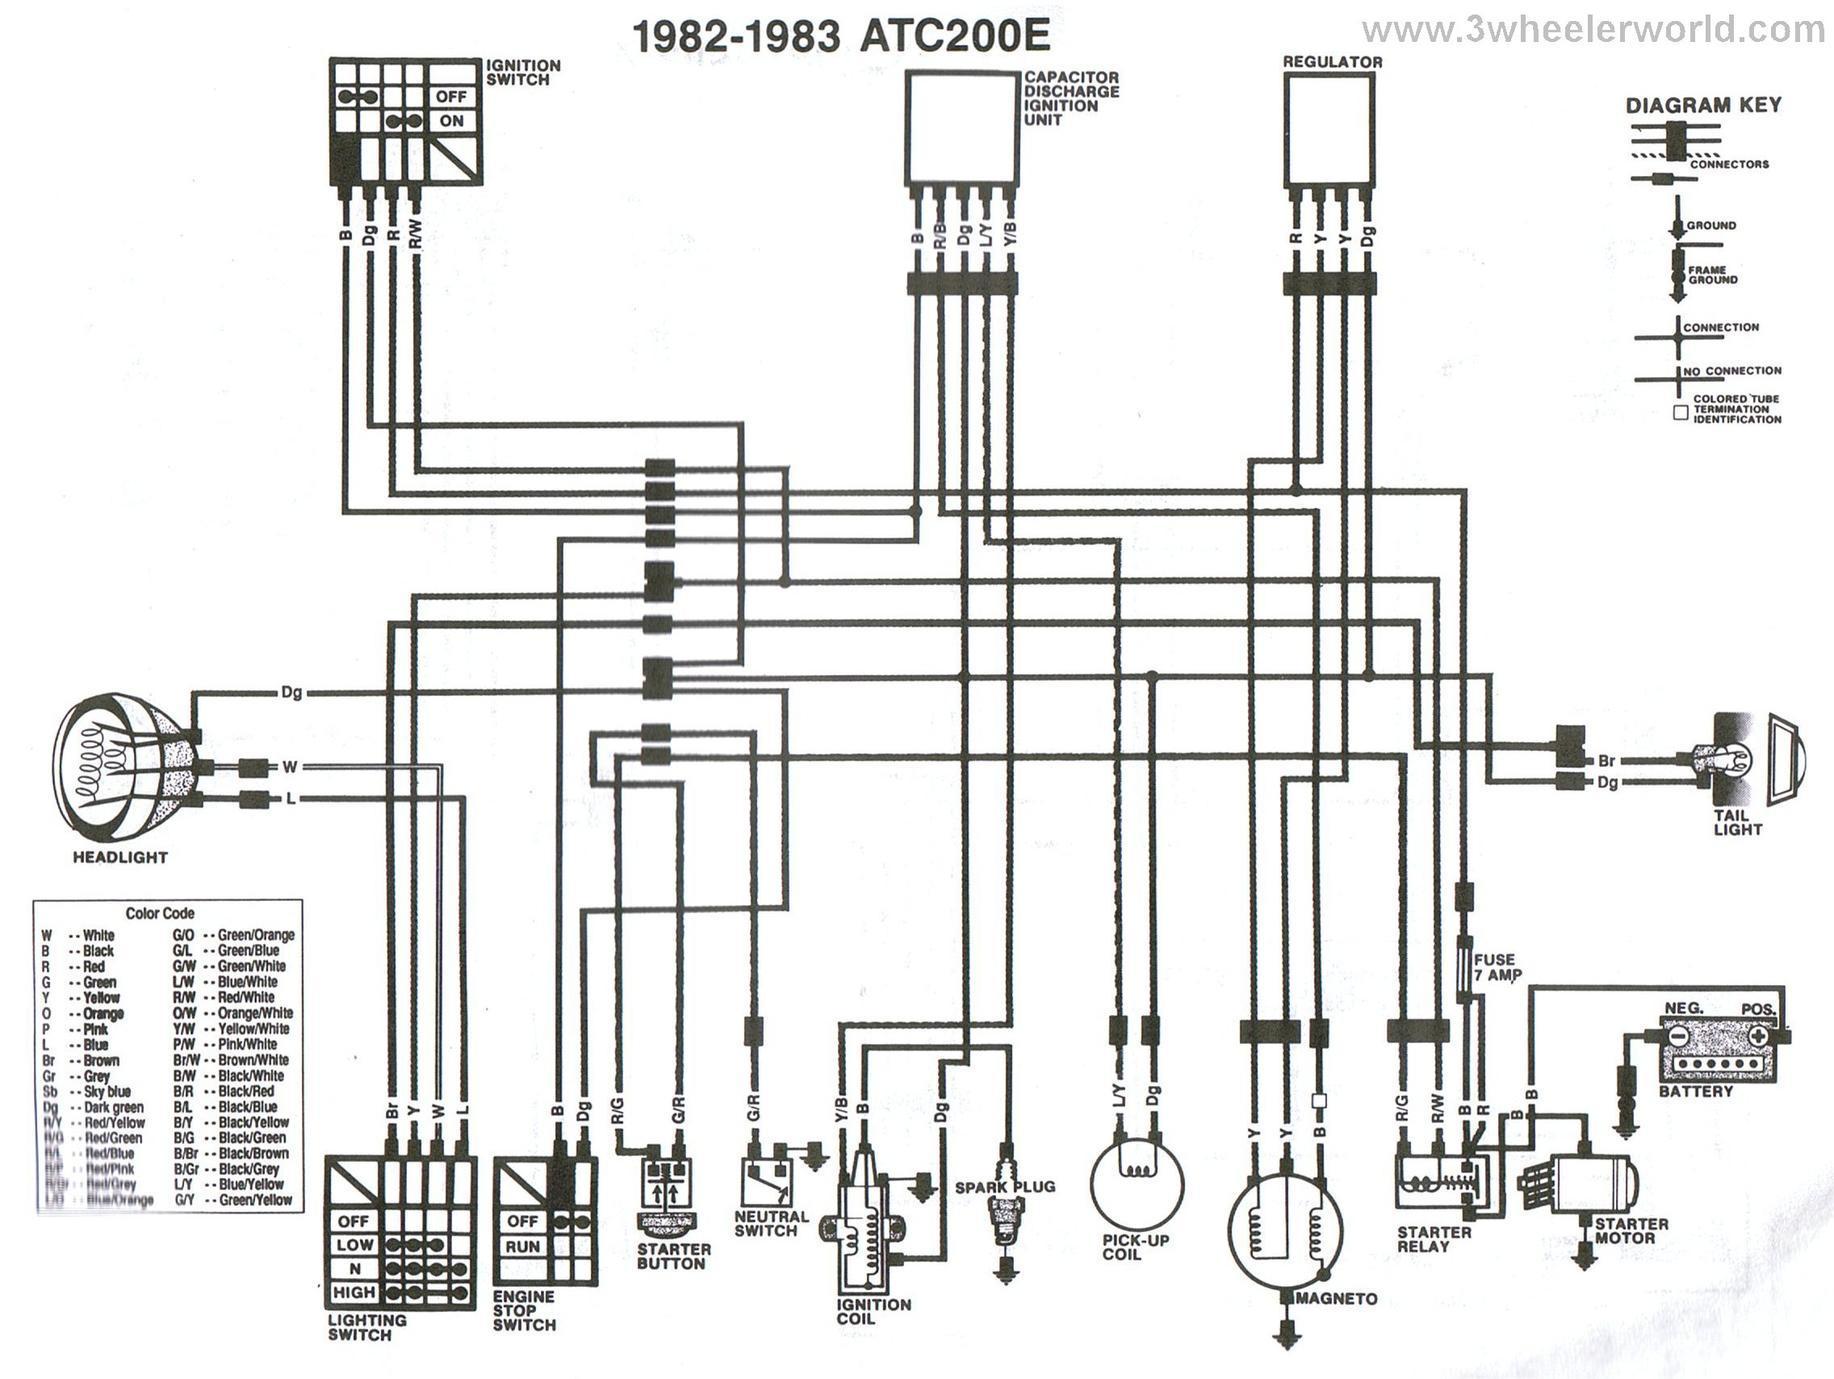 Honda 250r 4 Wheeler Wiring Diagram 1986 on kawasaki 300 atv motor schematic